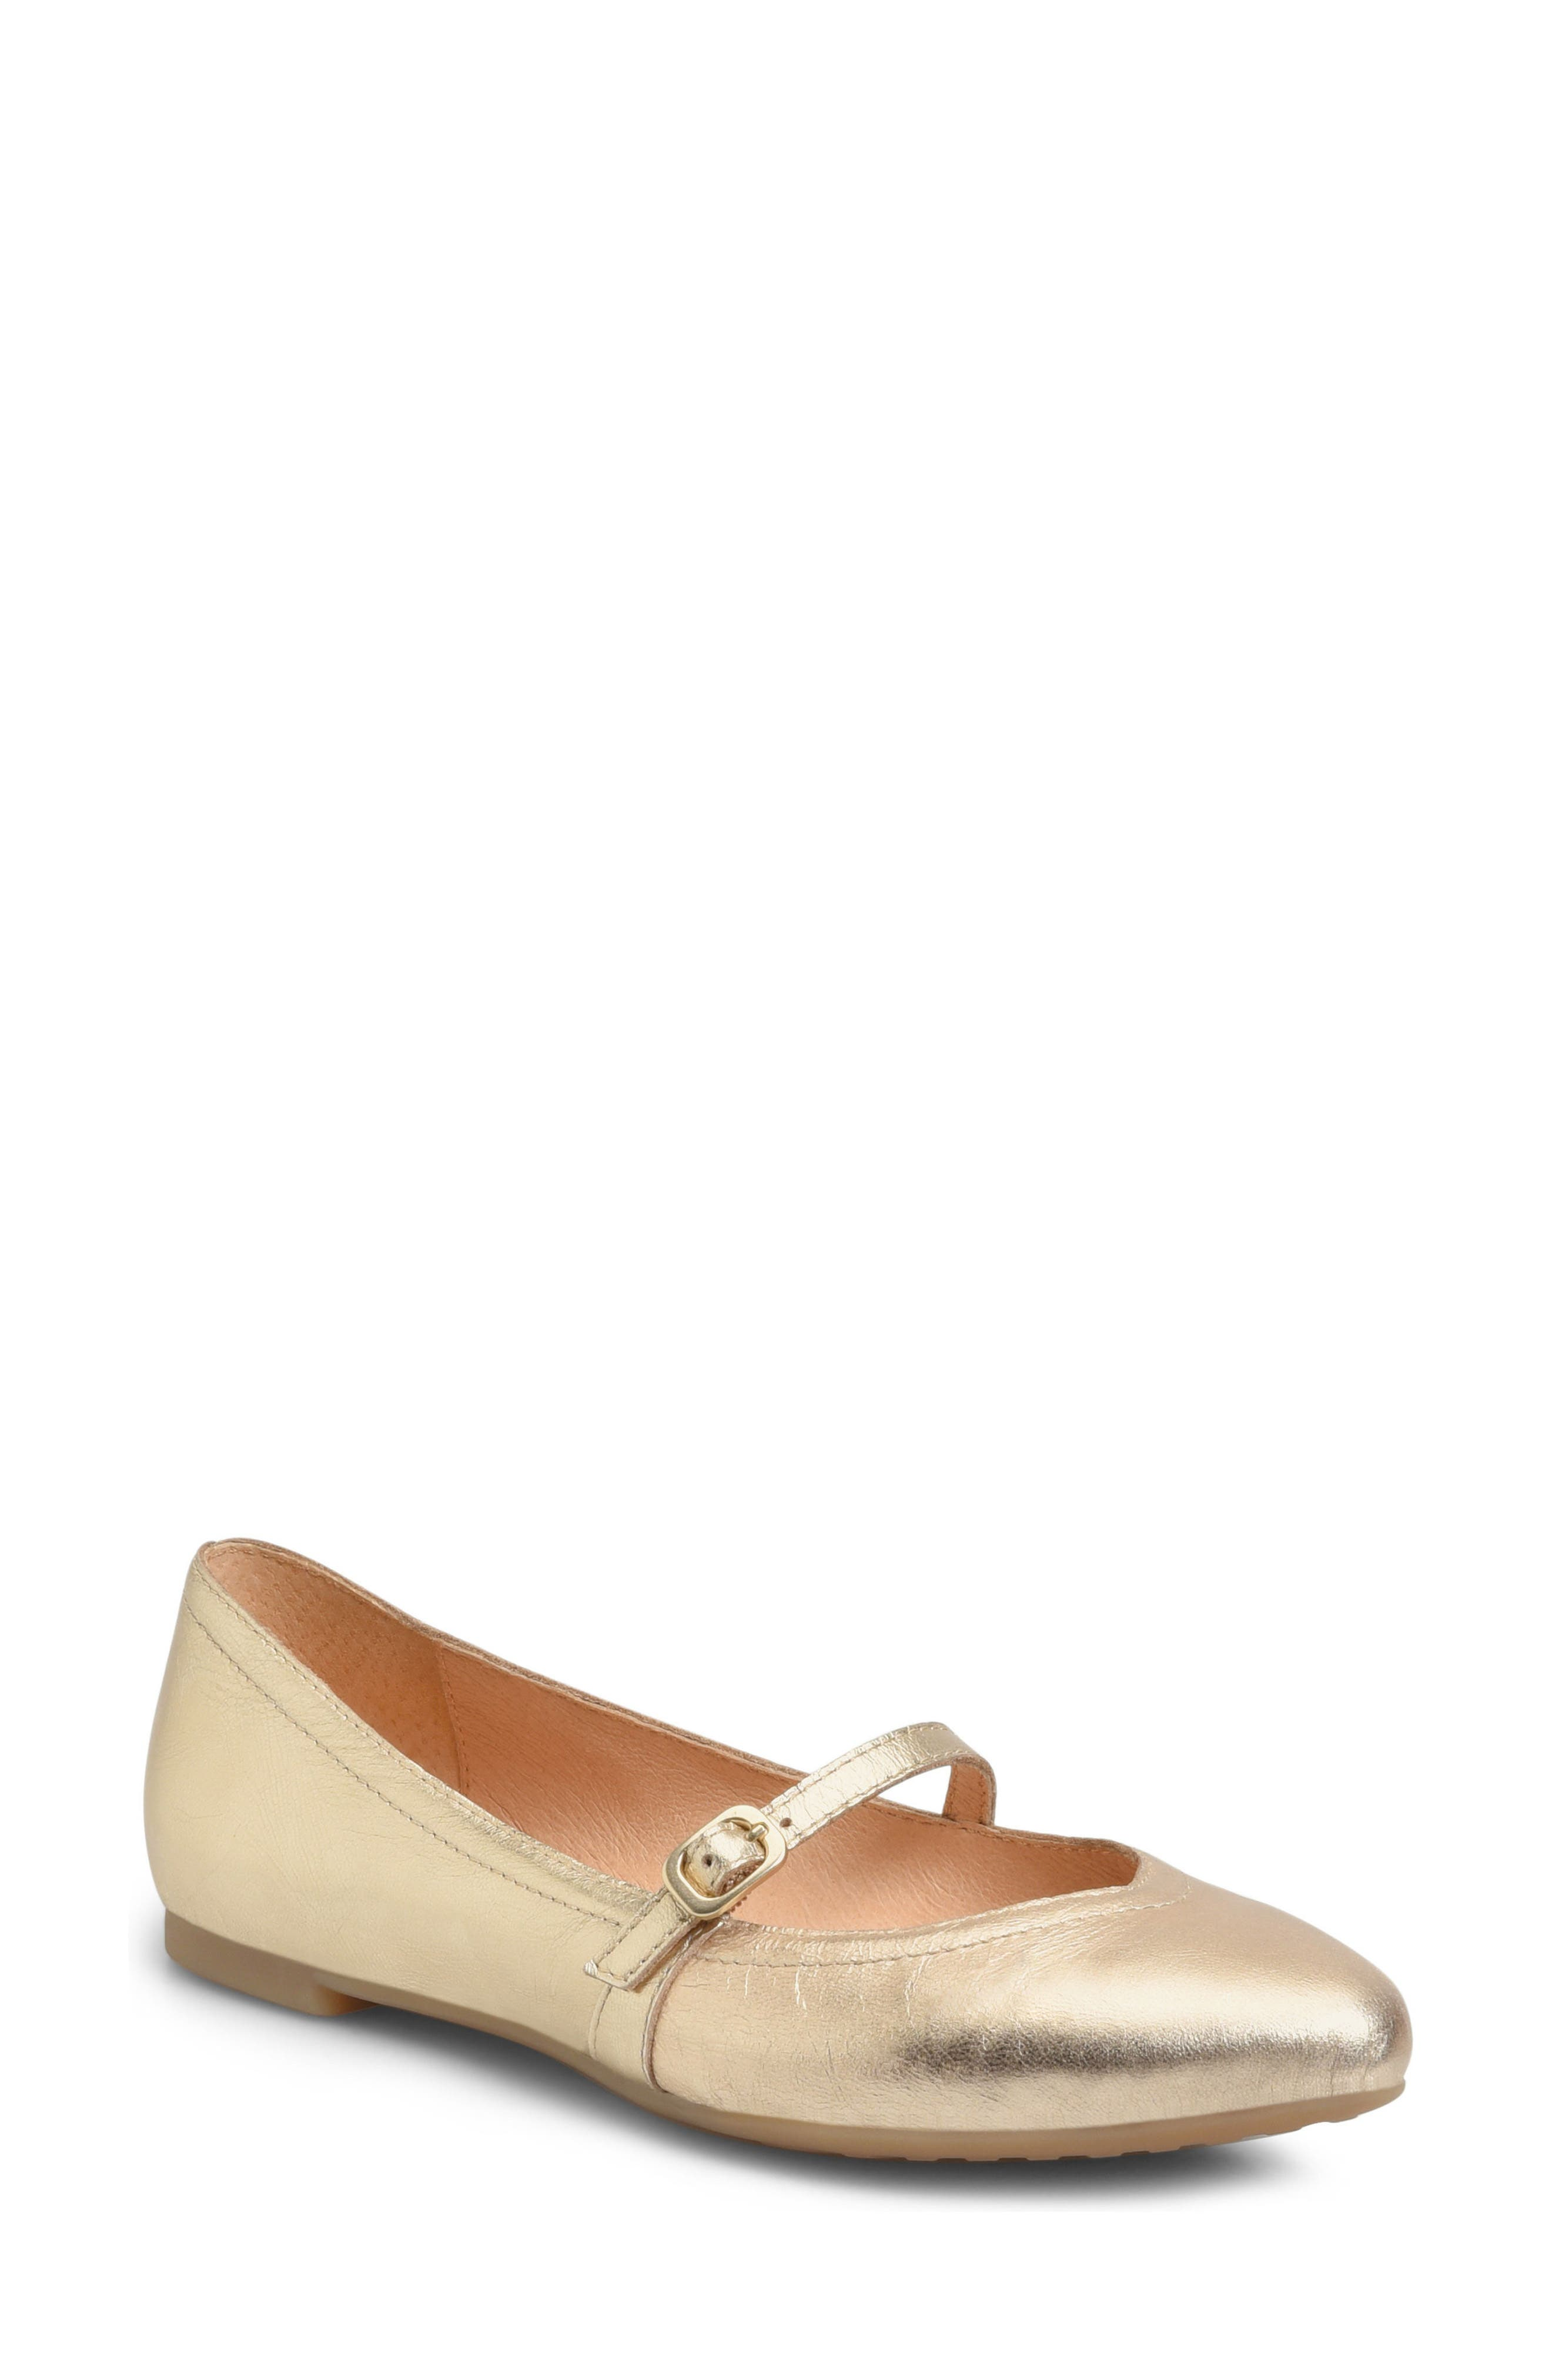 Lynn Mary Jane Flat,                         Main,                         color, Gold Leather